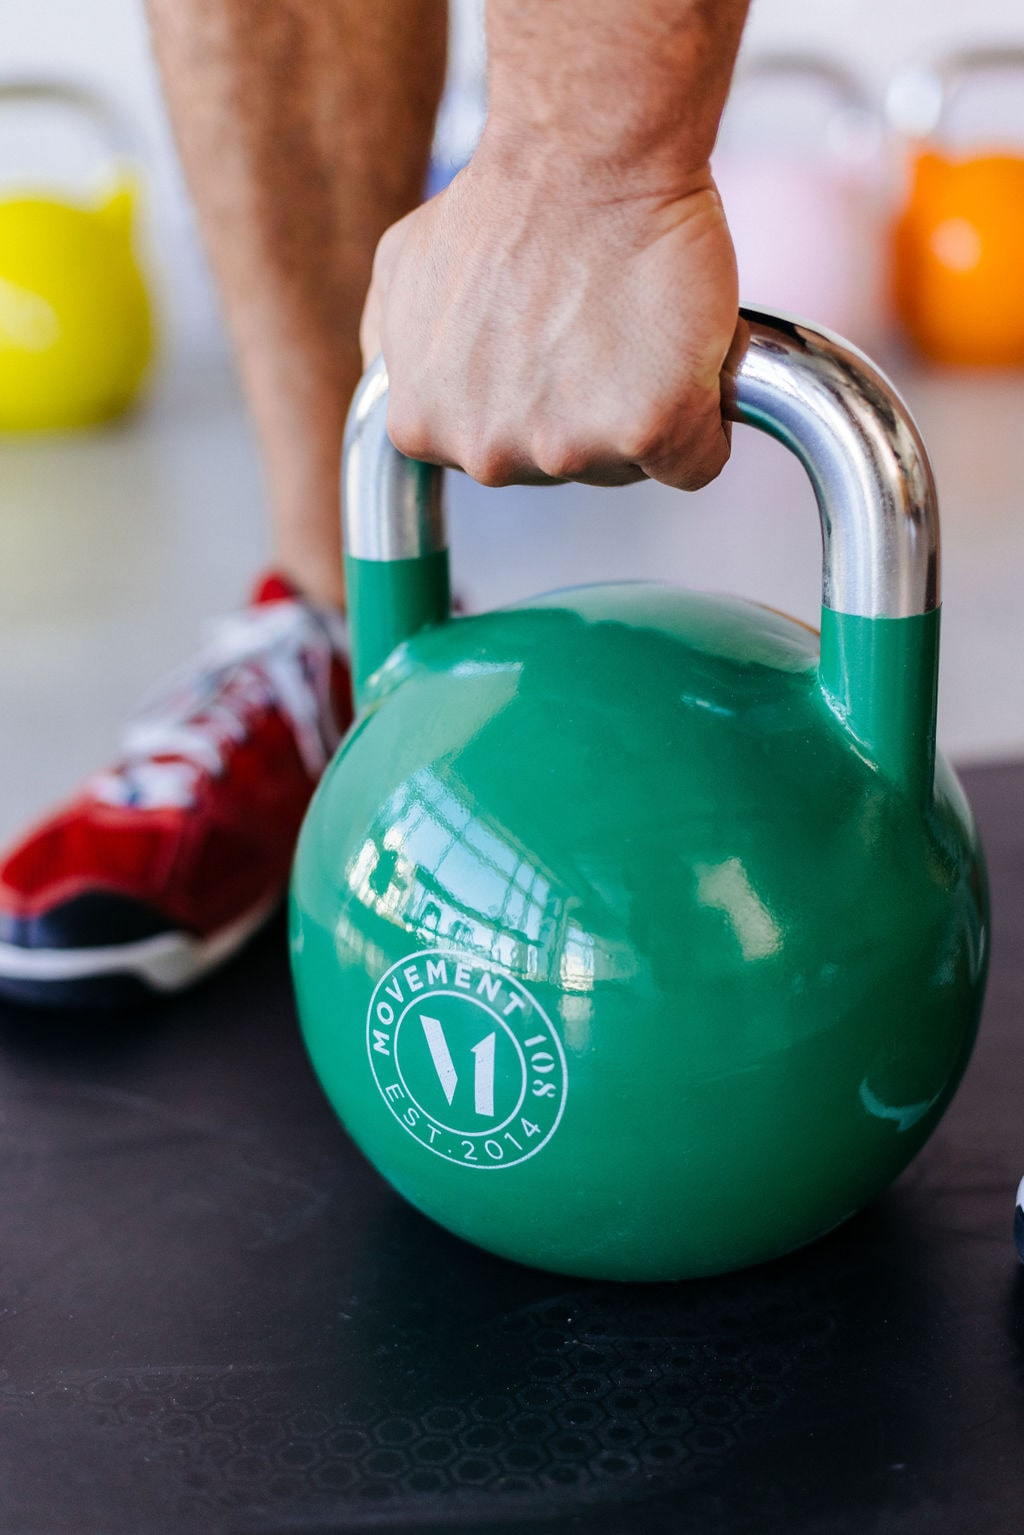 movement108 kettlebell